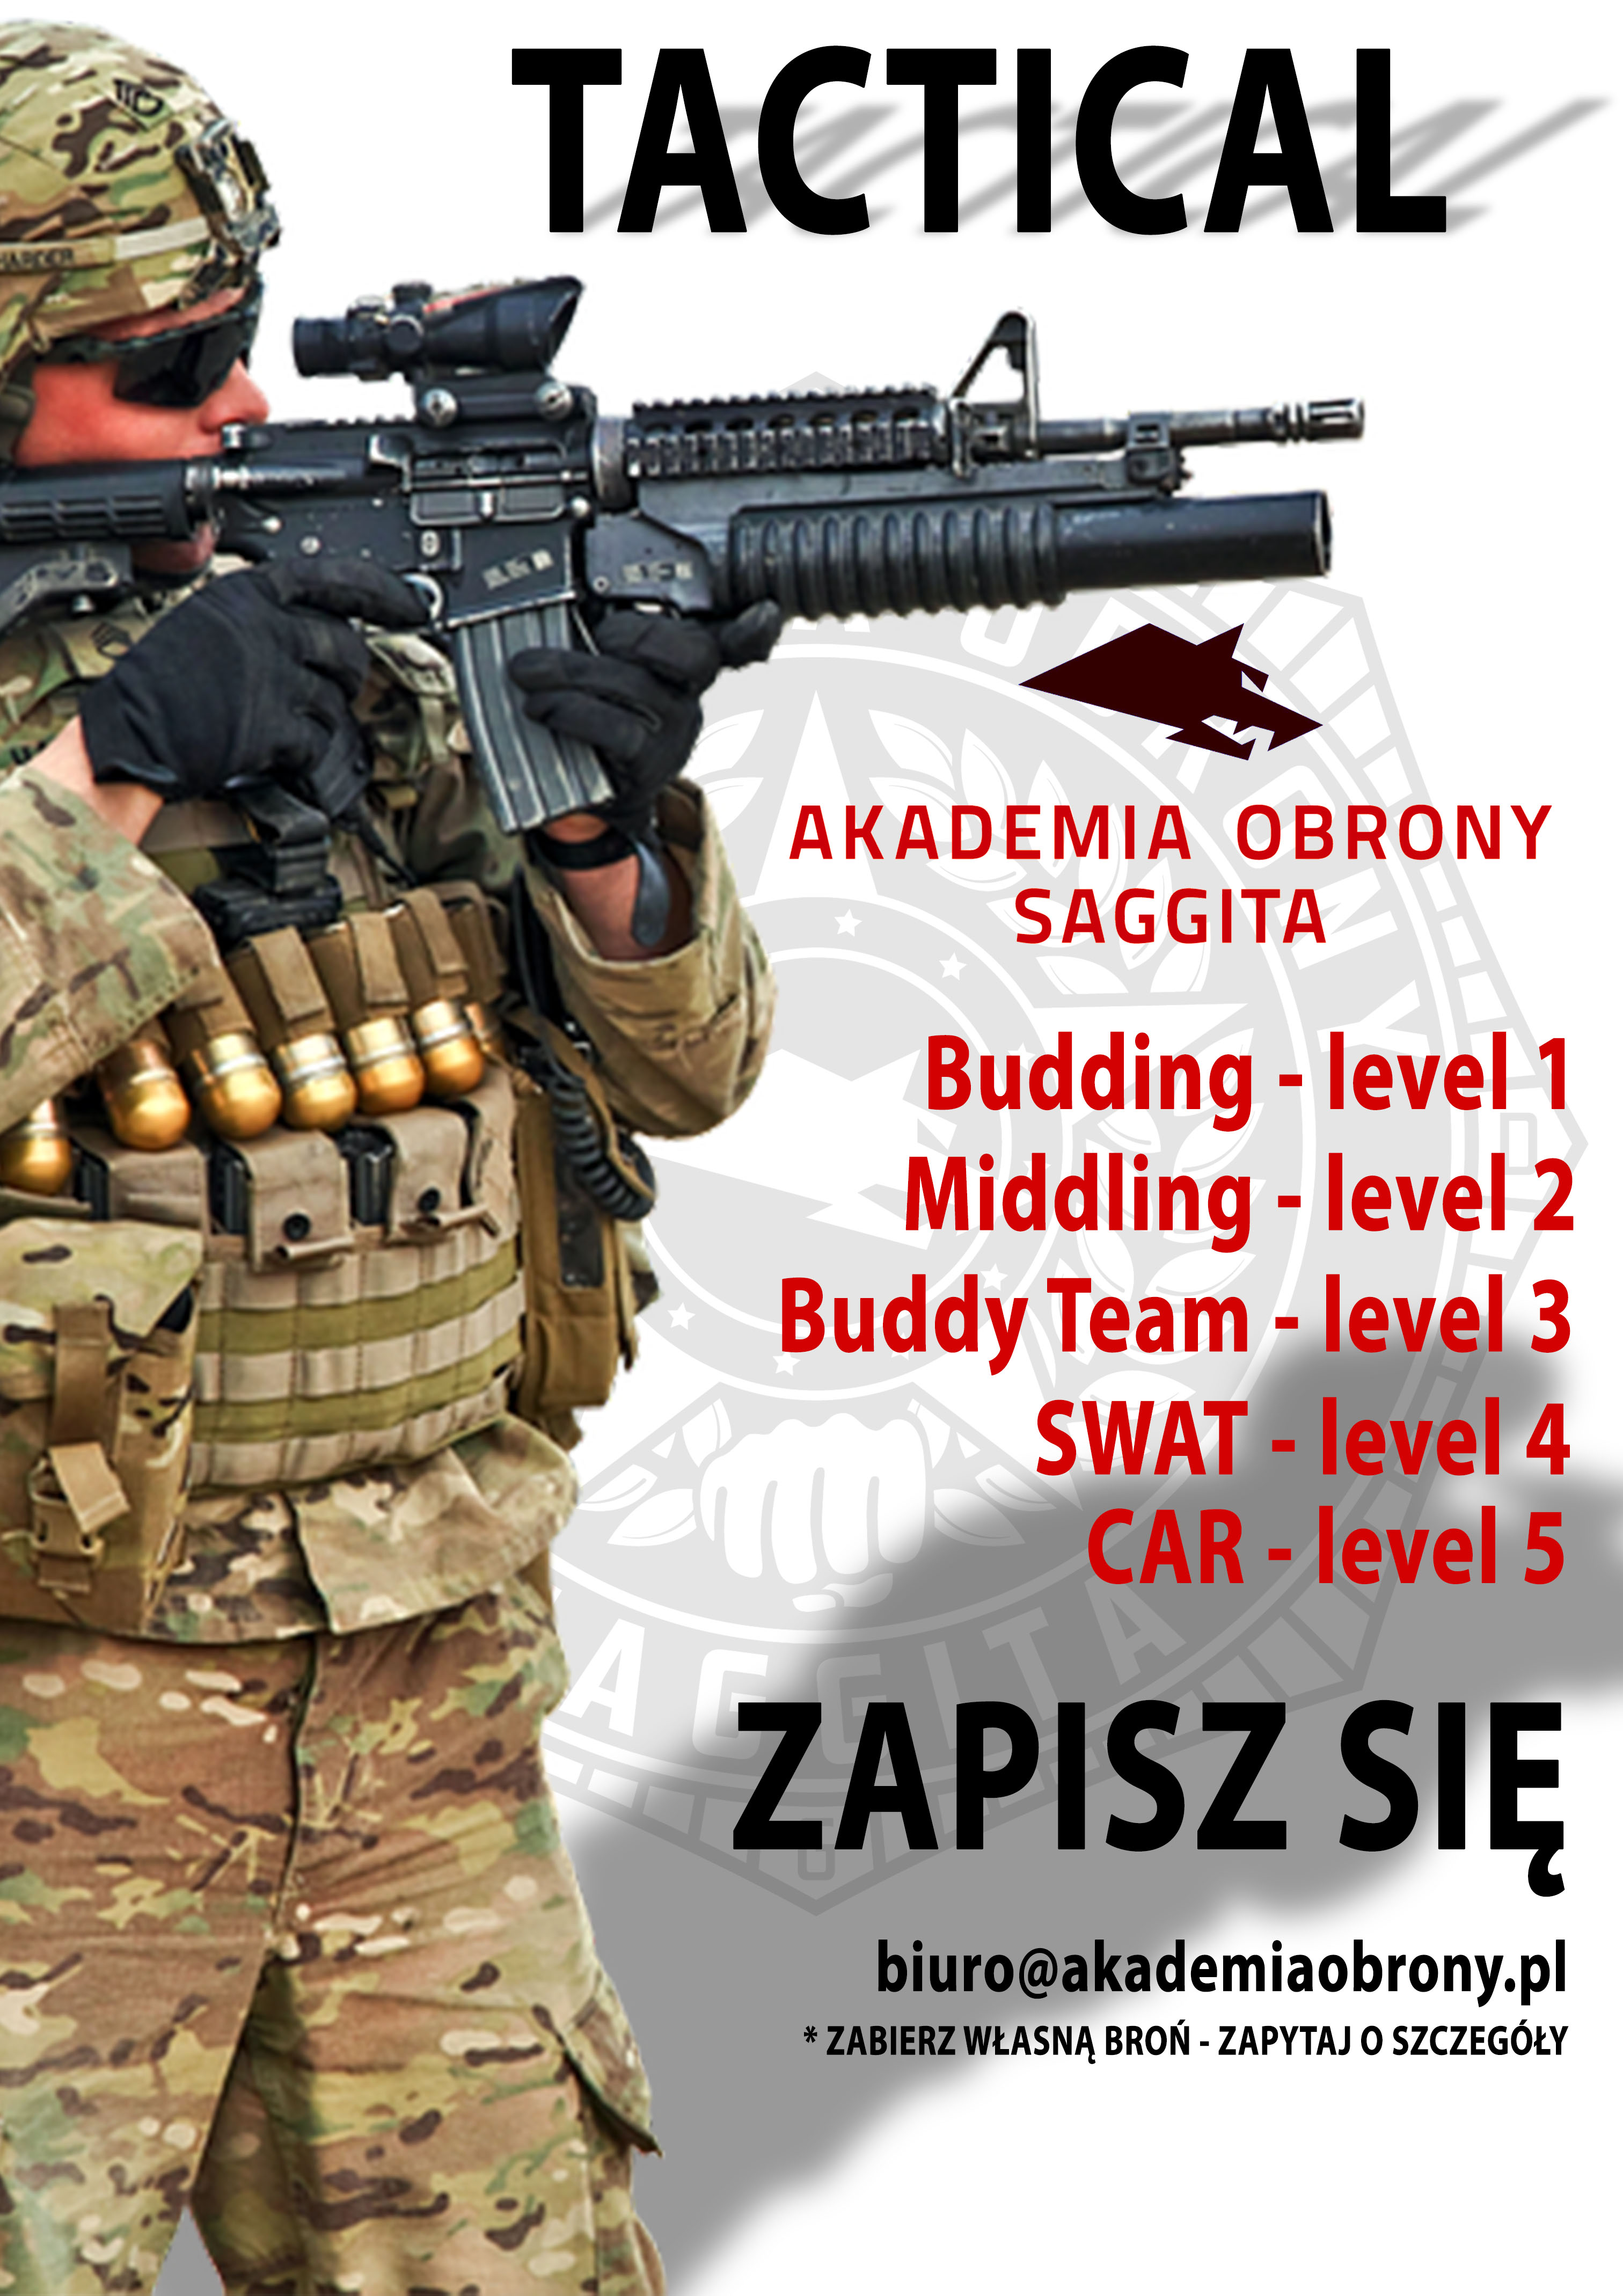 TACTICAL PLAKAT 2